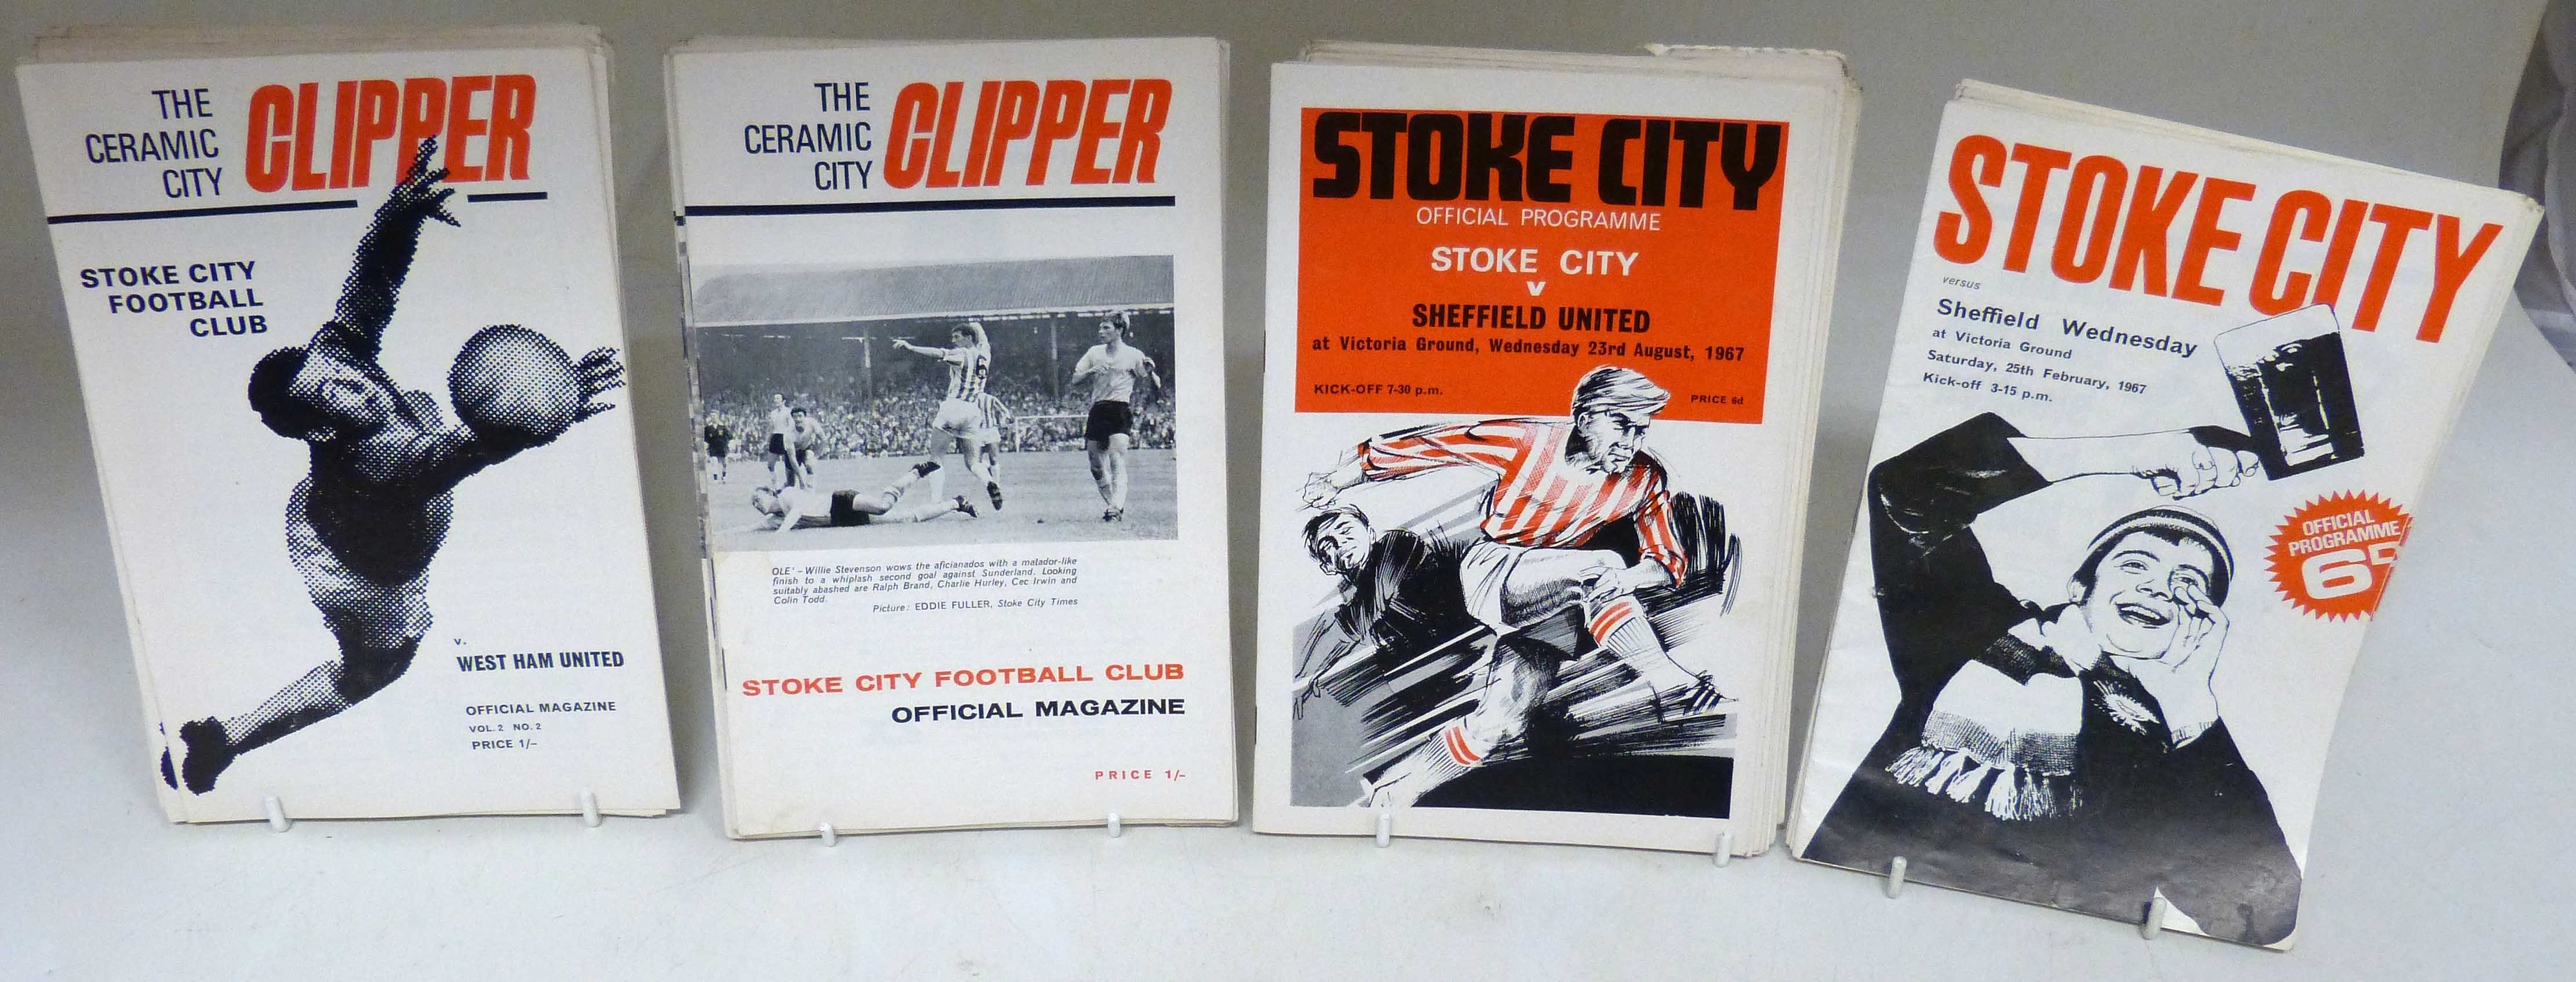 Lot 42 - 16 Stoke City programmes (The Ceramic City Clipper) from 1968, 19 from 1969, 6 programmes from